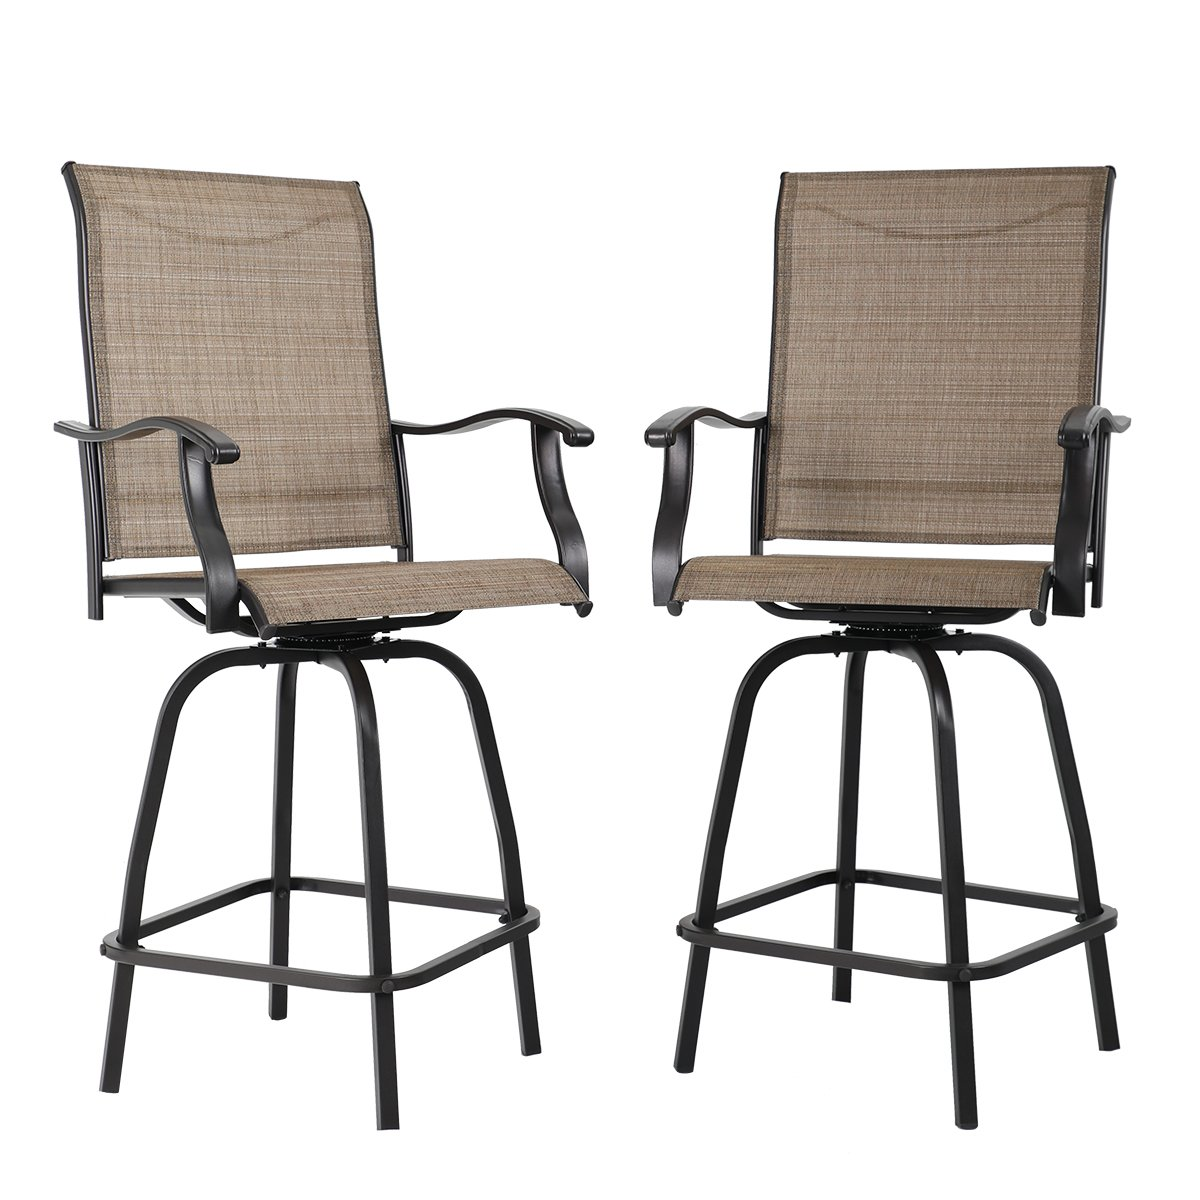 PHI VILLA Swivel Bar Stools All-Weather Patio Furniture, 2 Pack by PHI VILLA